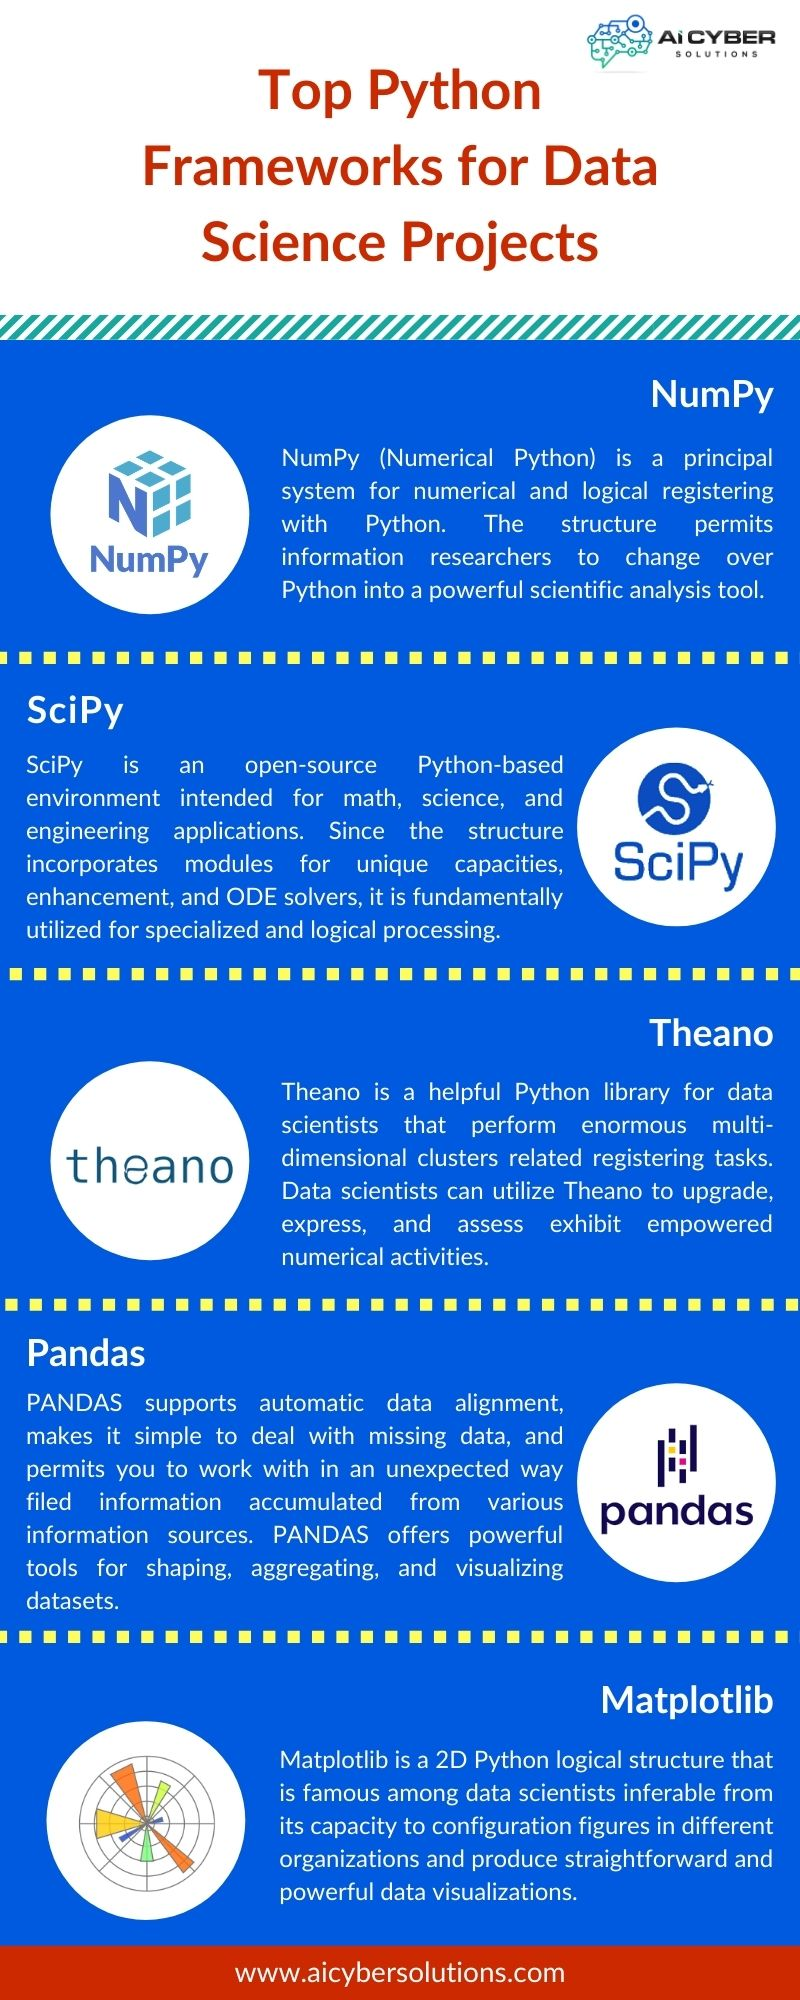 Top Python Frameworks for Data Science Projects